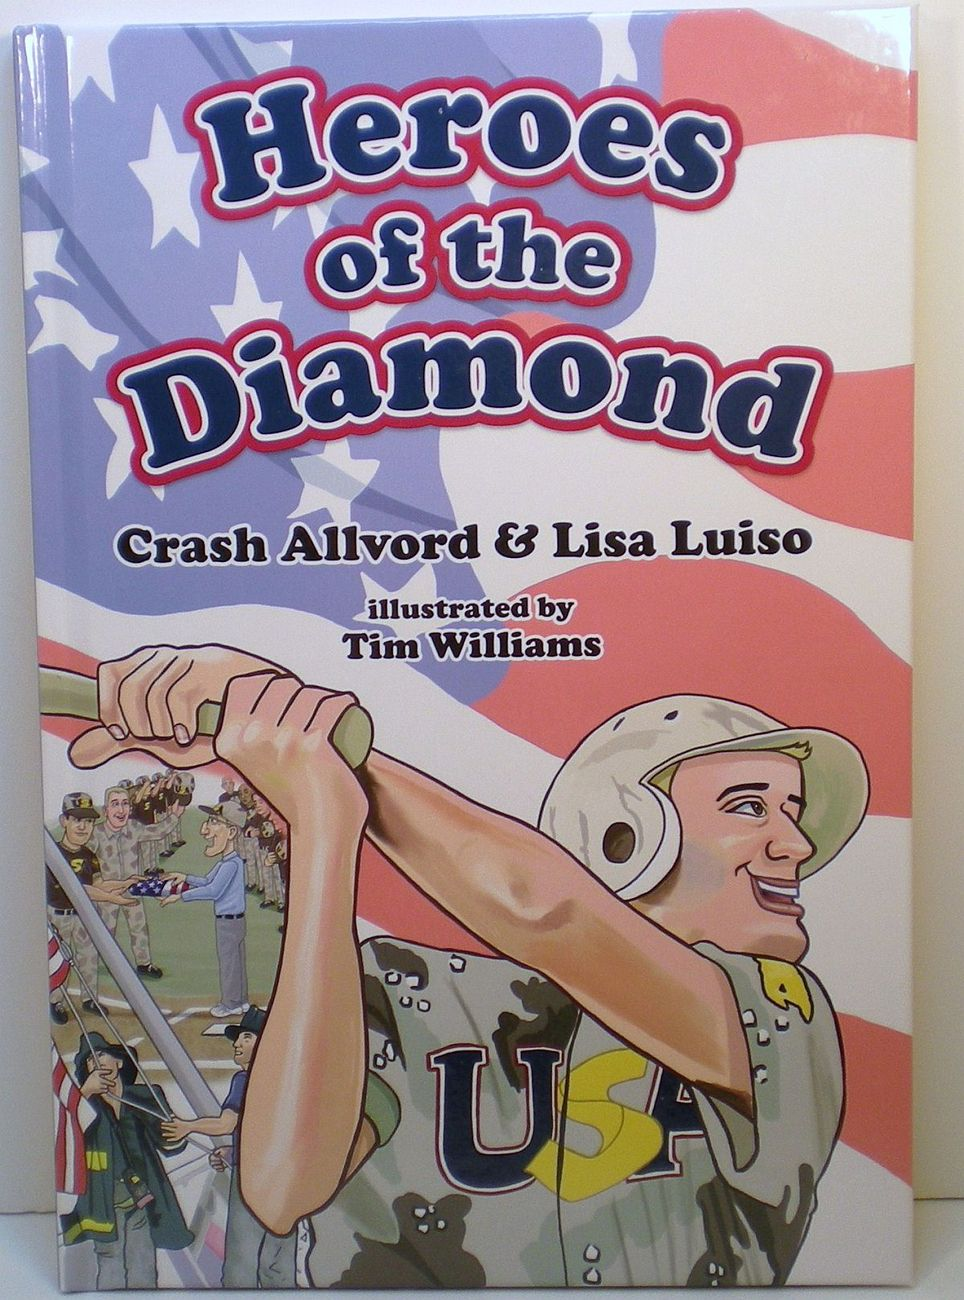 Heroes of the Diamond by Crash Allvord, Lisa Luiso, Tim Williams Illustrator